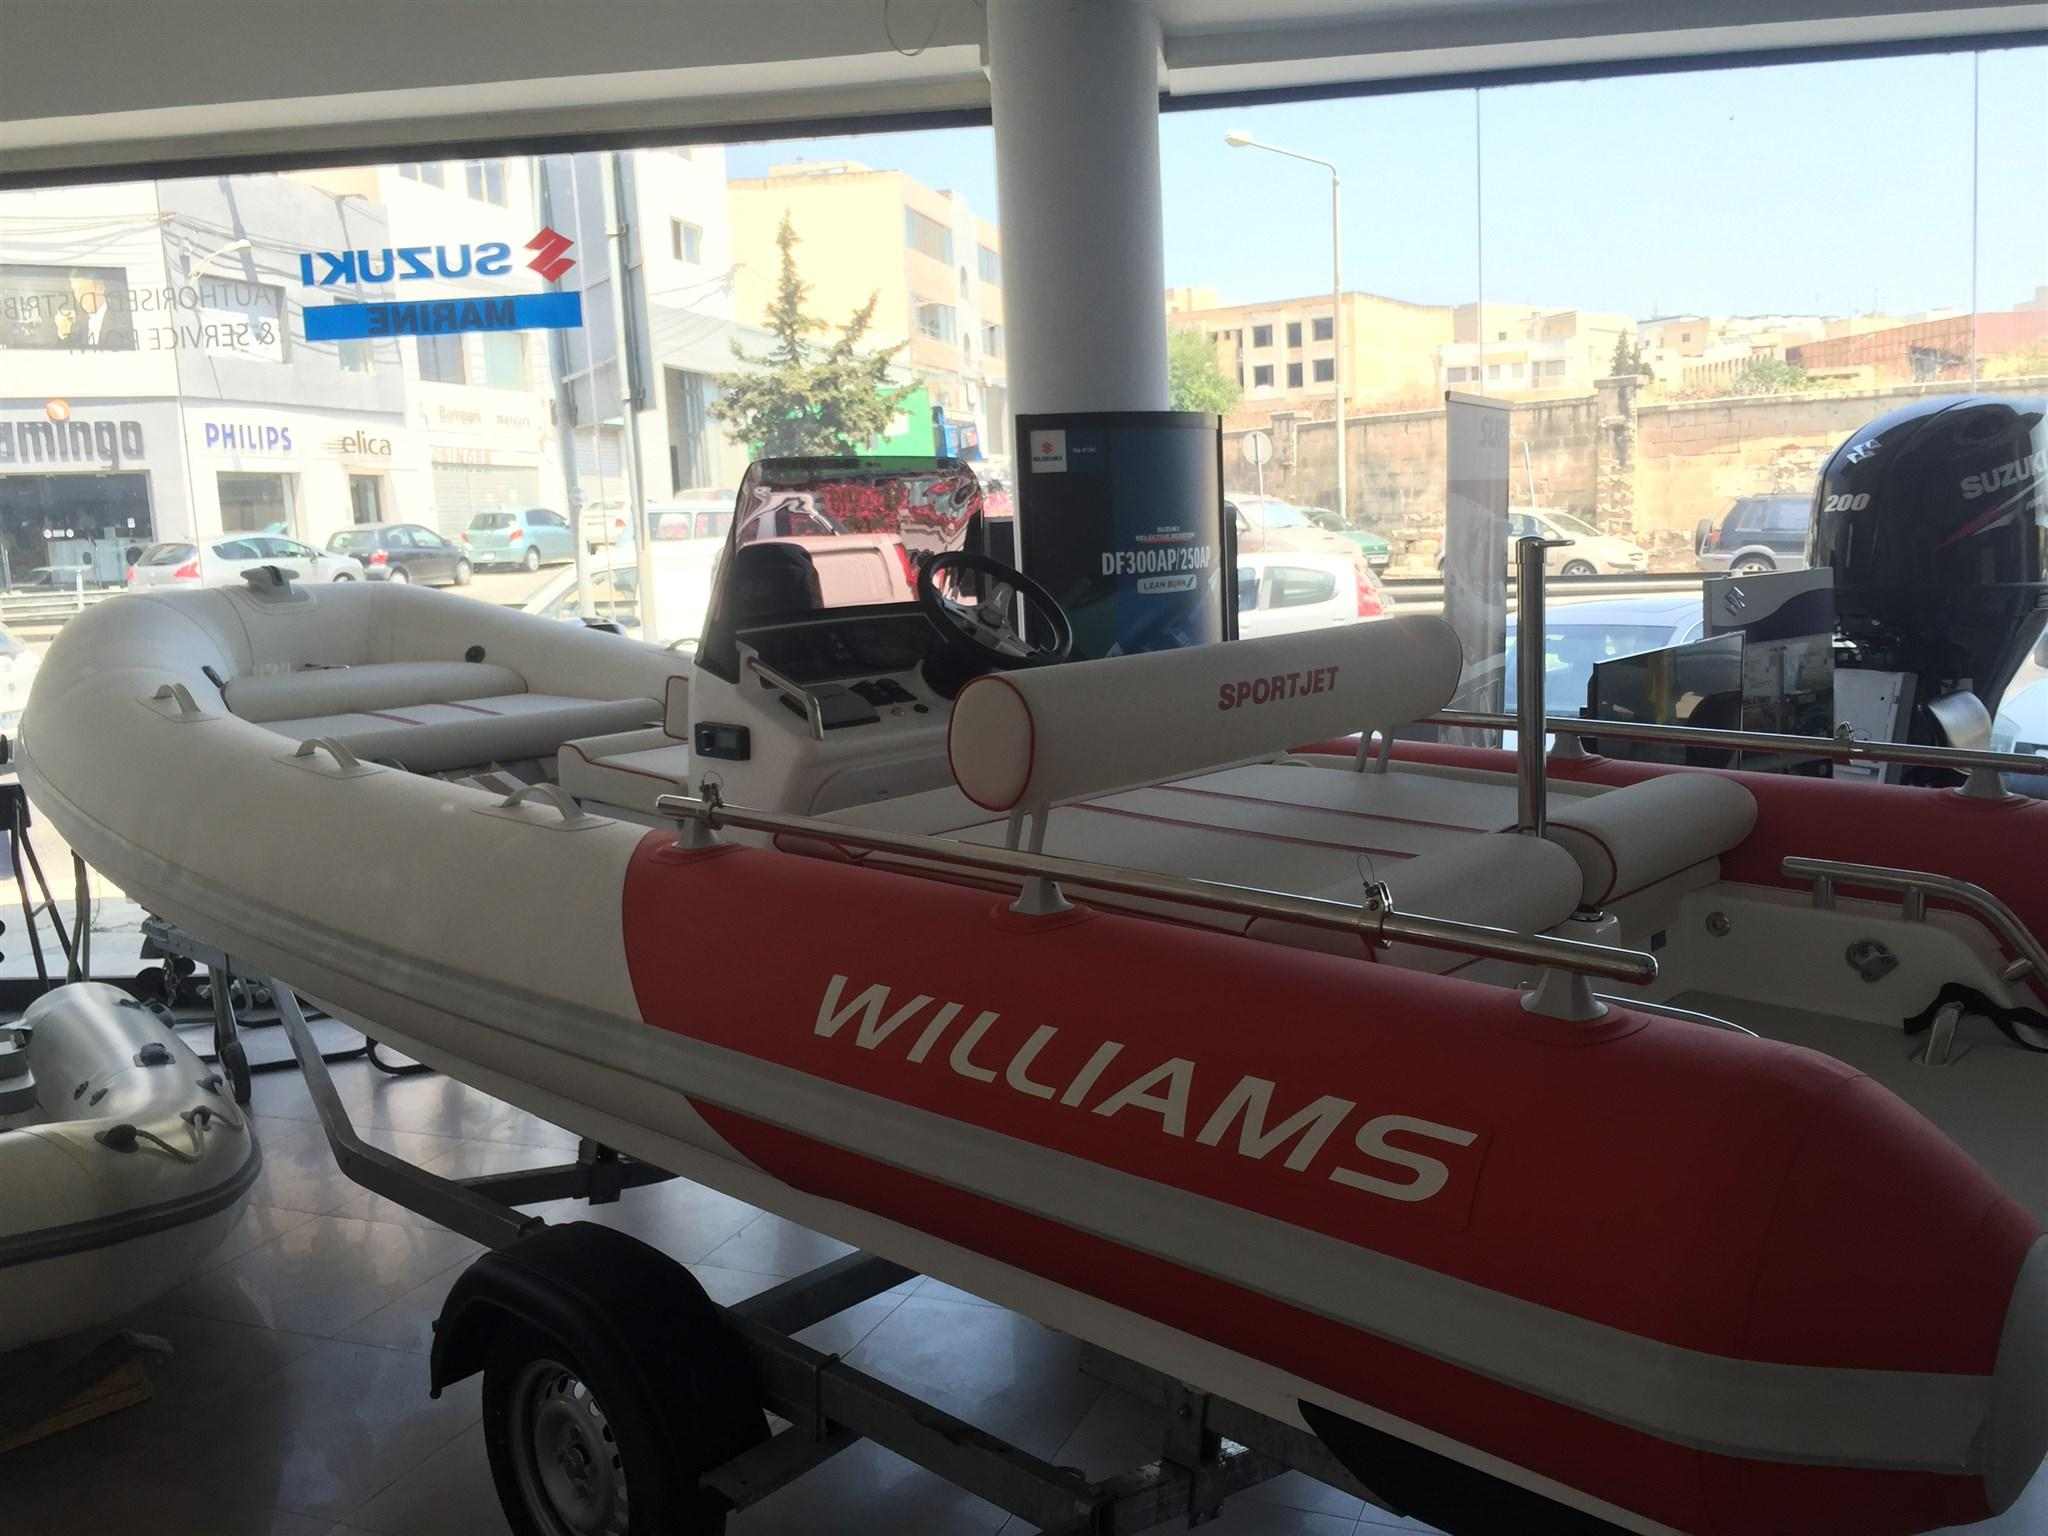 2015 Williams Sportjet 520 Power Boat For Sale Www